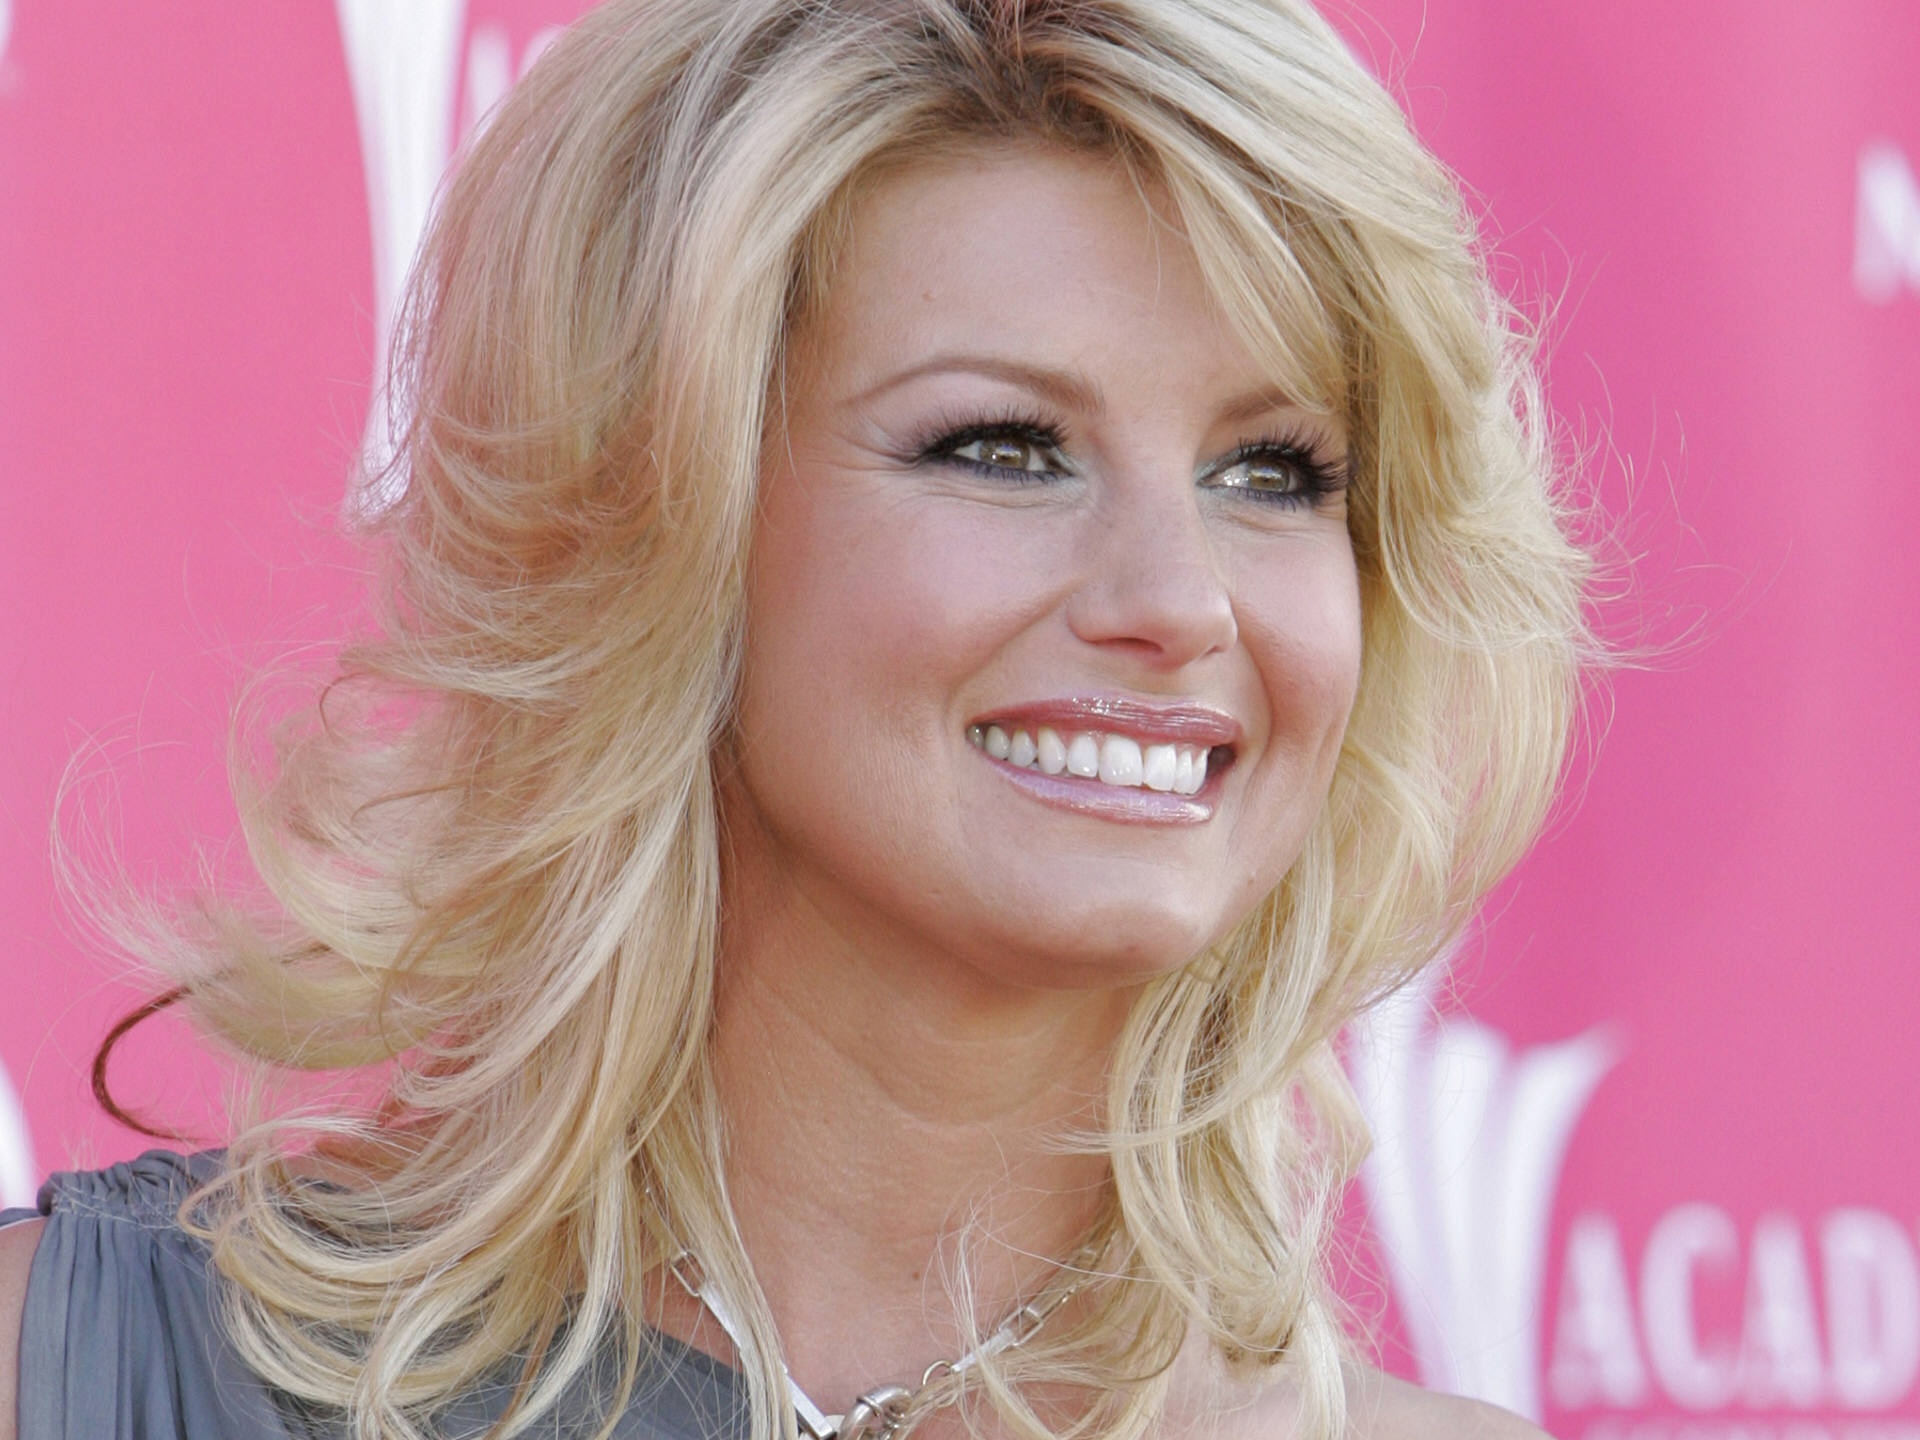 faith hill widescreen desktop wallpaper 1207